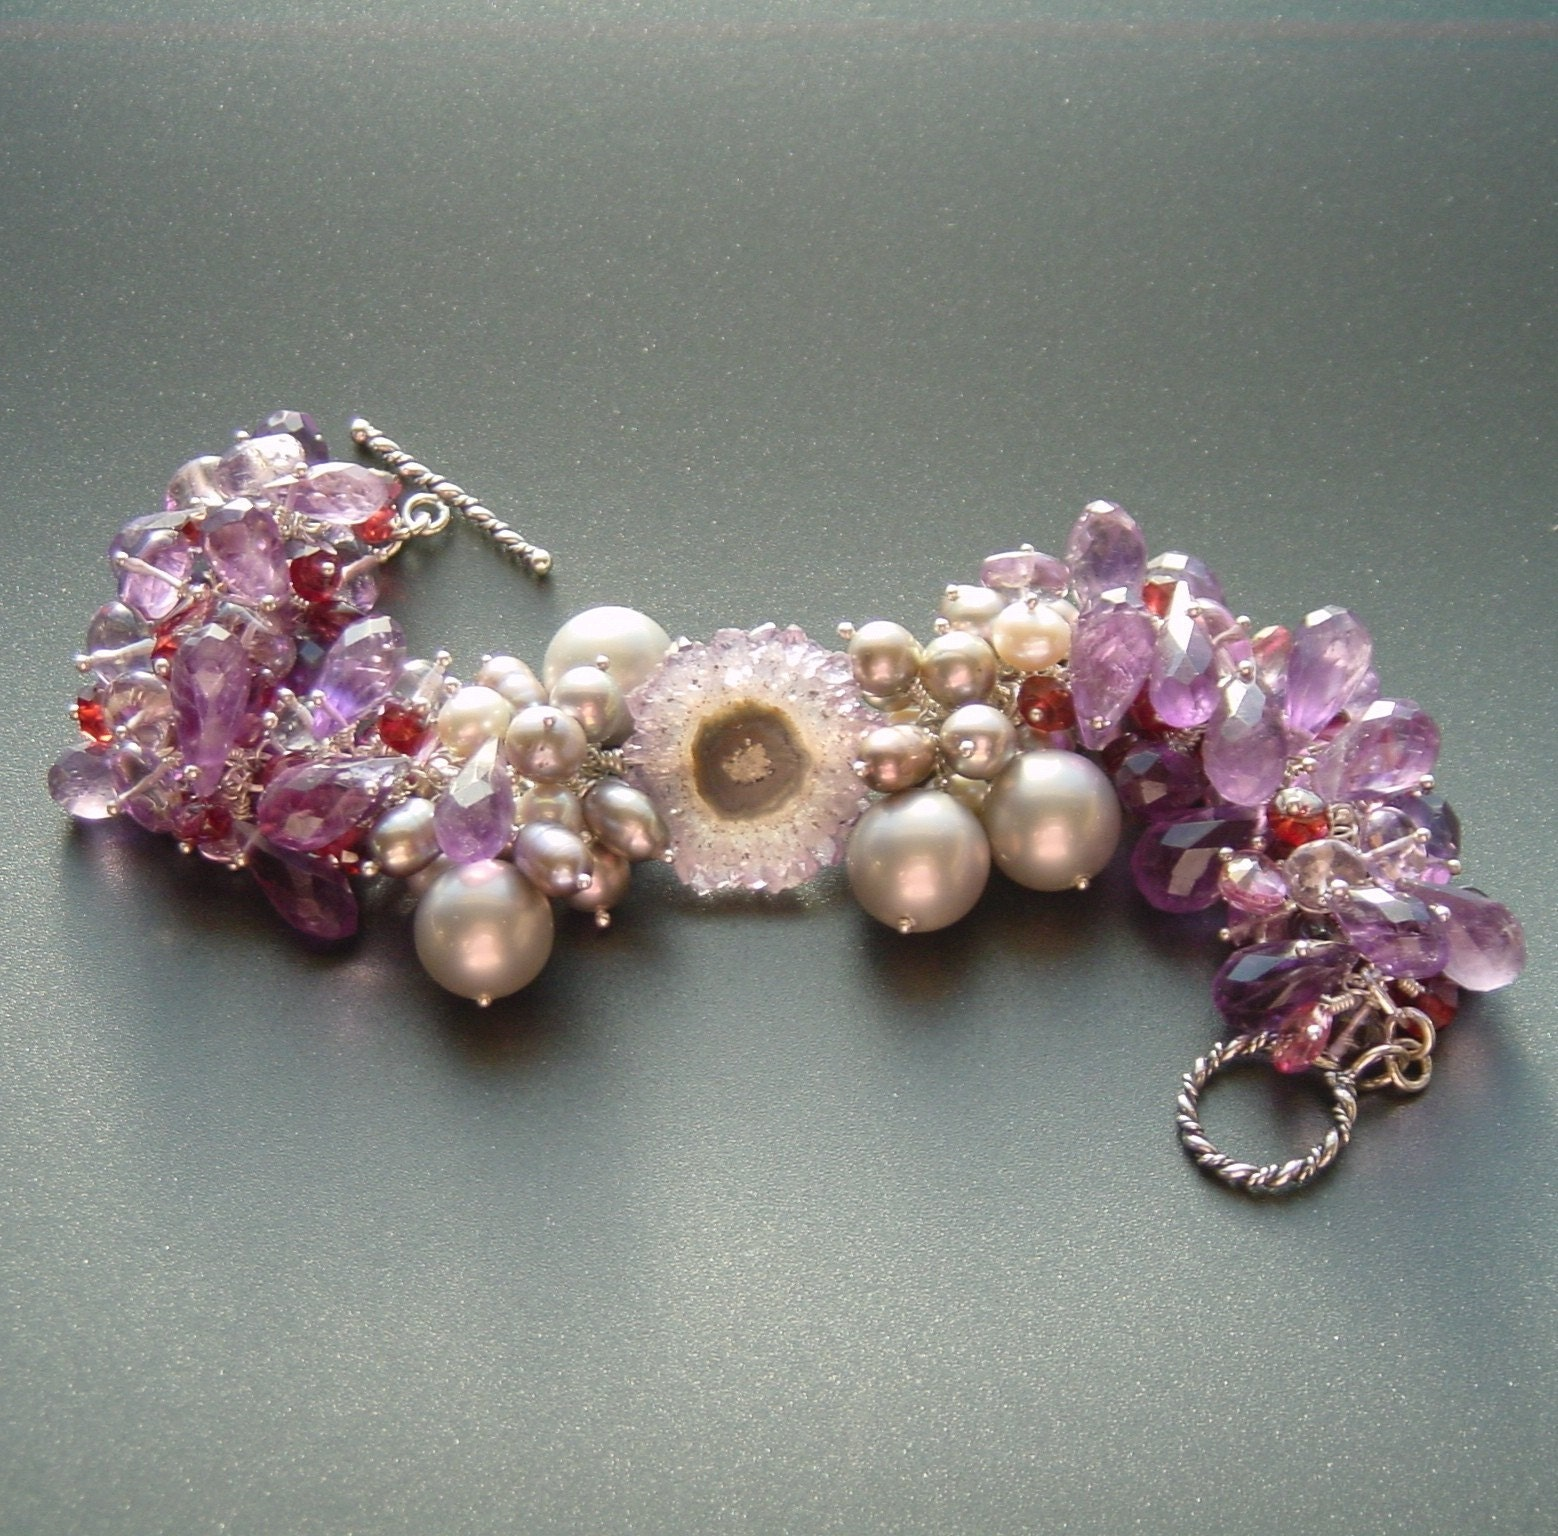 Leila Bracelet - Amethyst, Pink Topaz, Rubellite Garnet and Pearls with Amethyst Stalactite Feature Bead